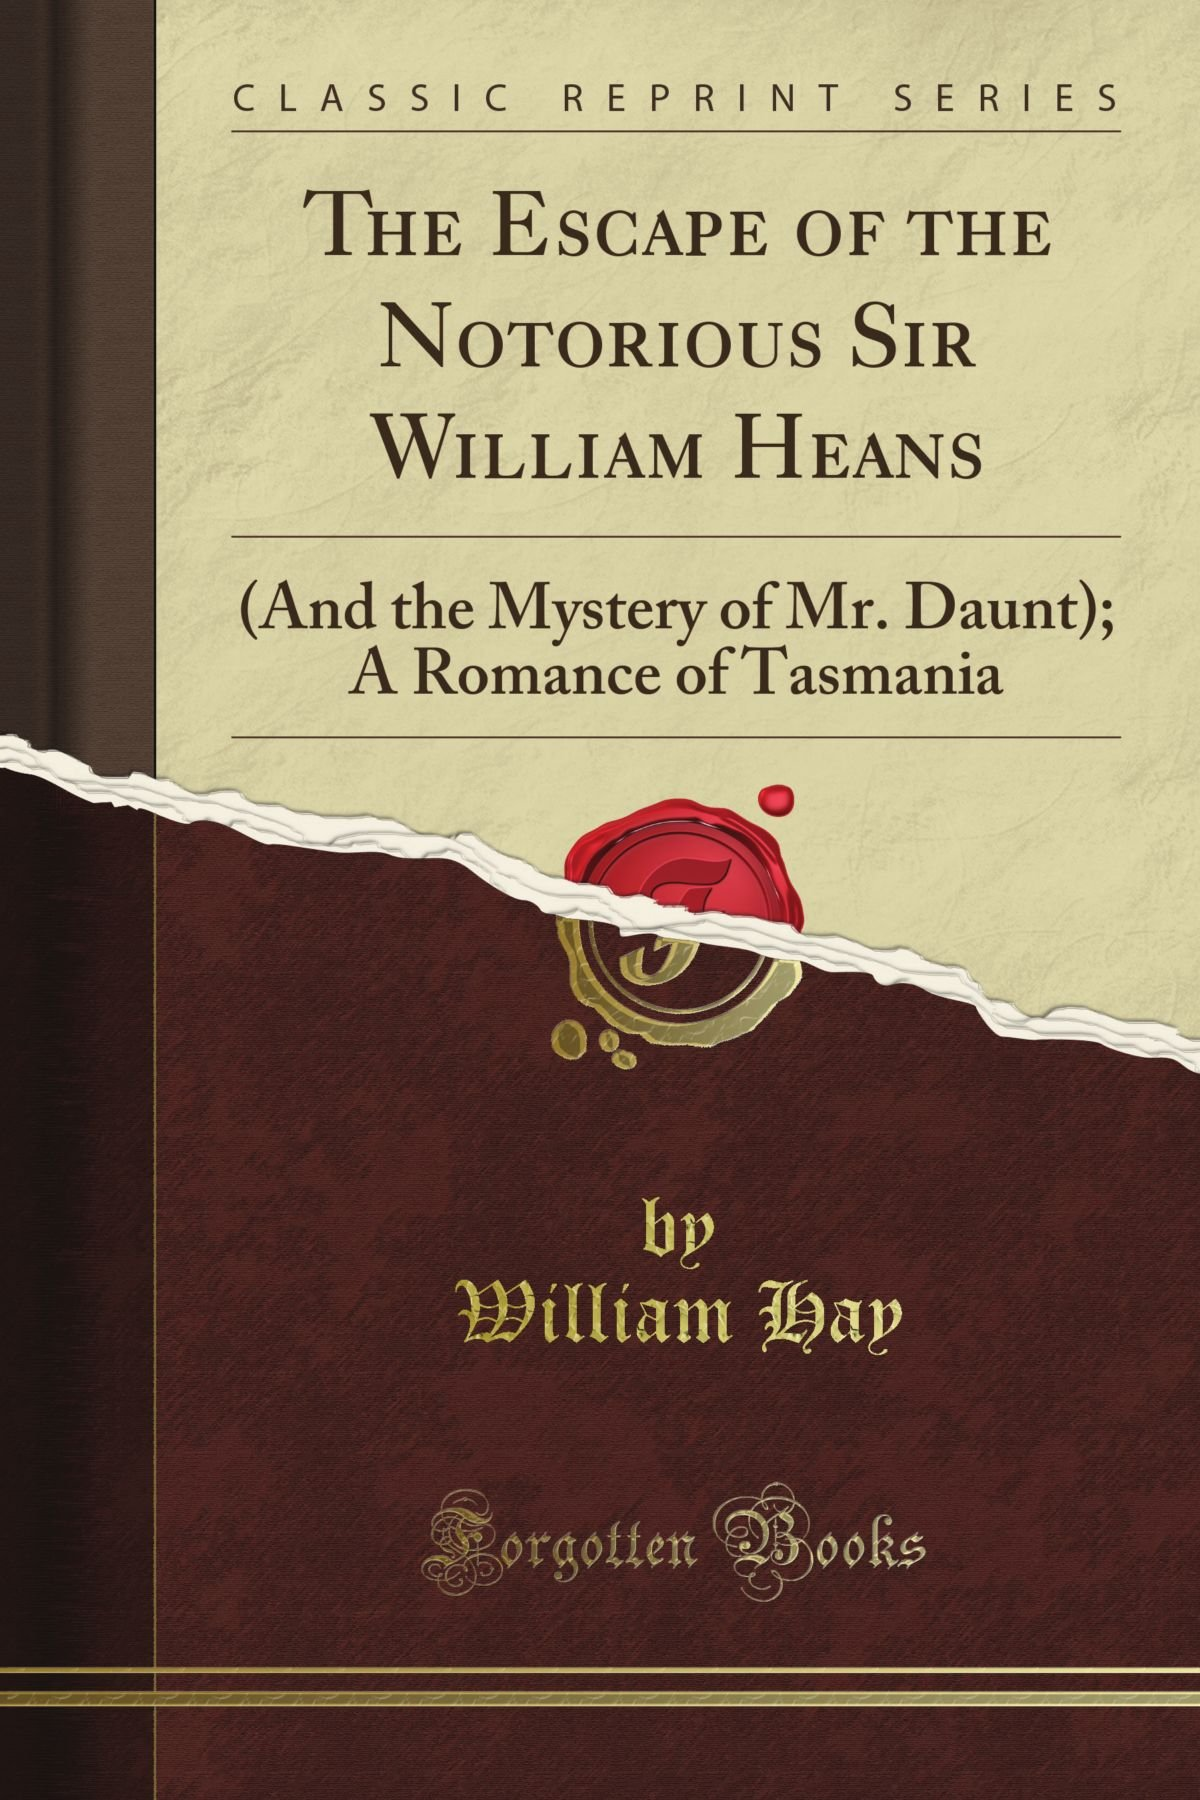 Download The Escape of the Notorious Sir William Heans: (And the Mystery of Mr. Daunt); A Romance of Tasmania (Classic Reprint) ebook